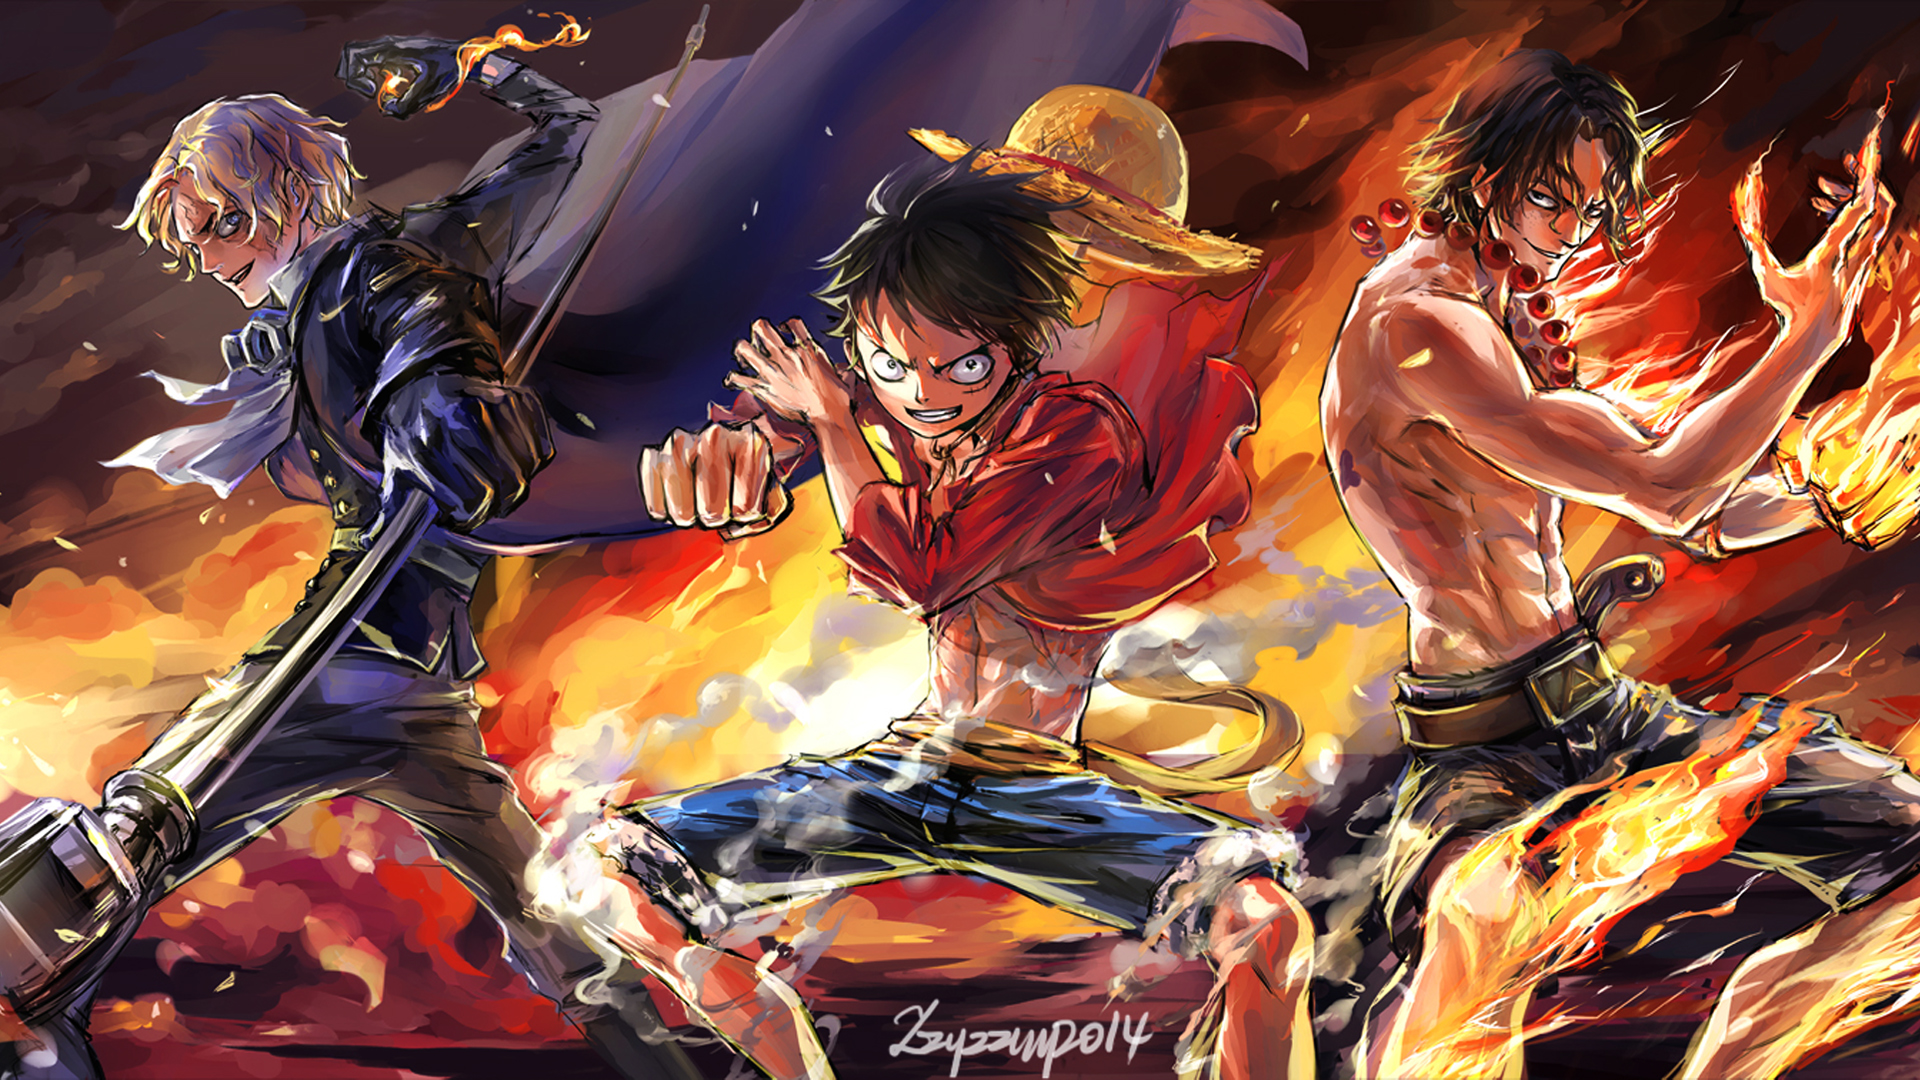 ace one piece anime hd 1920x1080 1080p wallpaper and compatible for 1920x1080